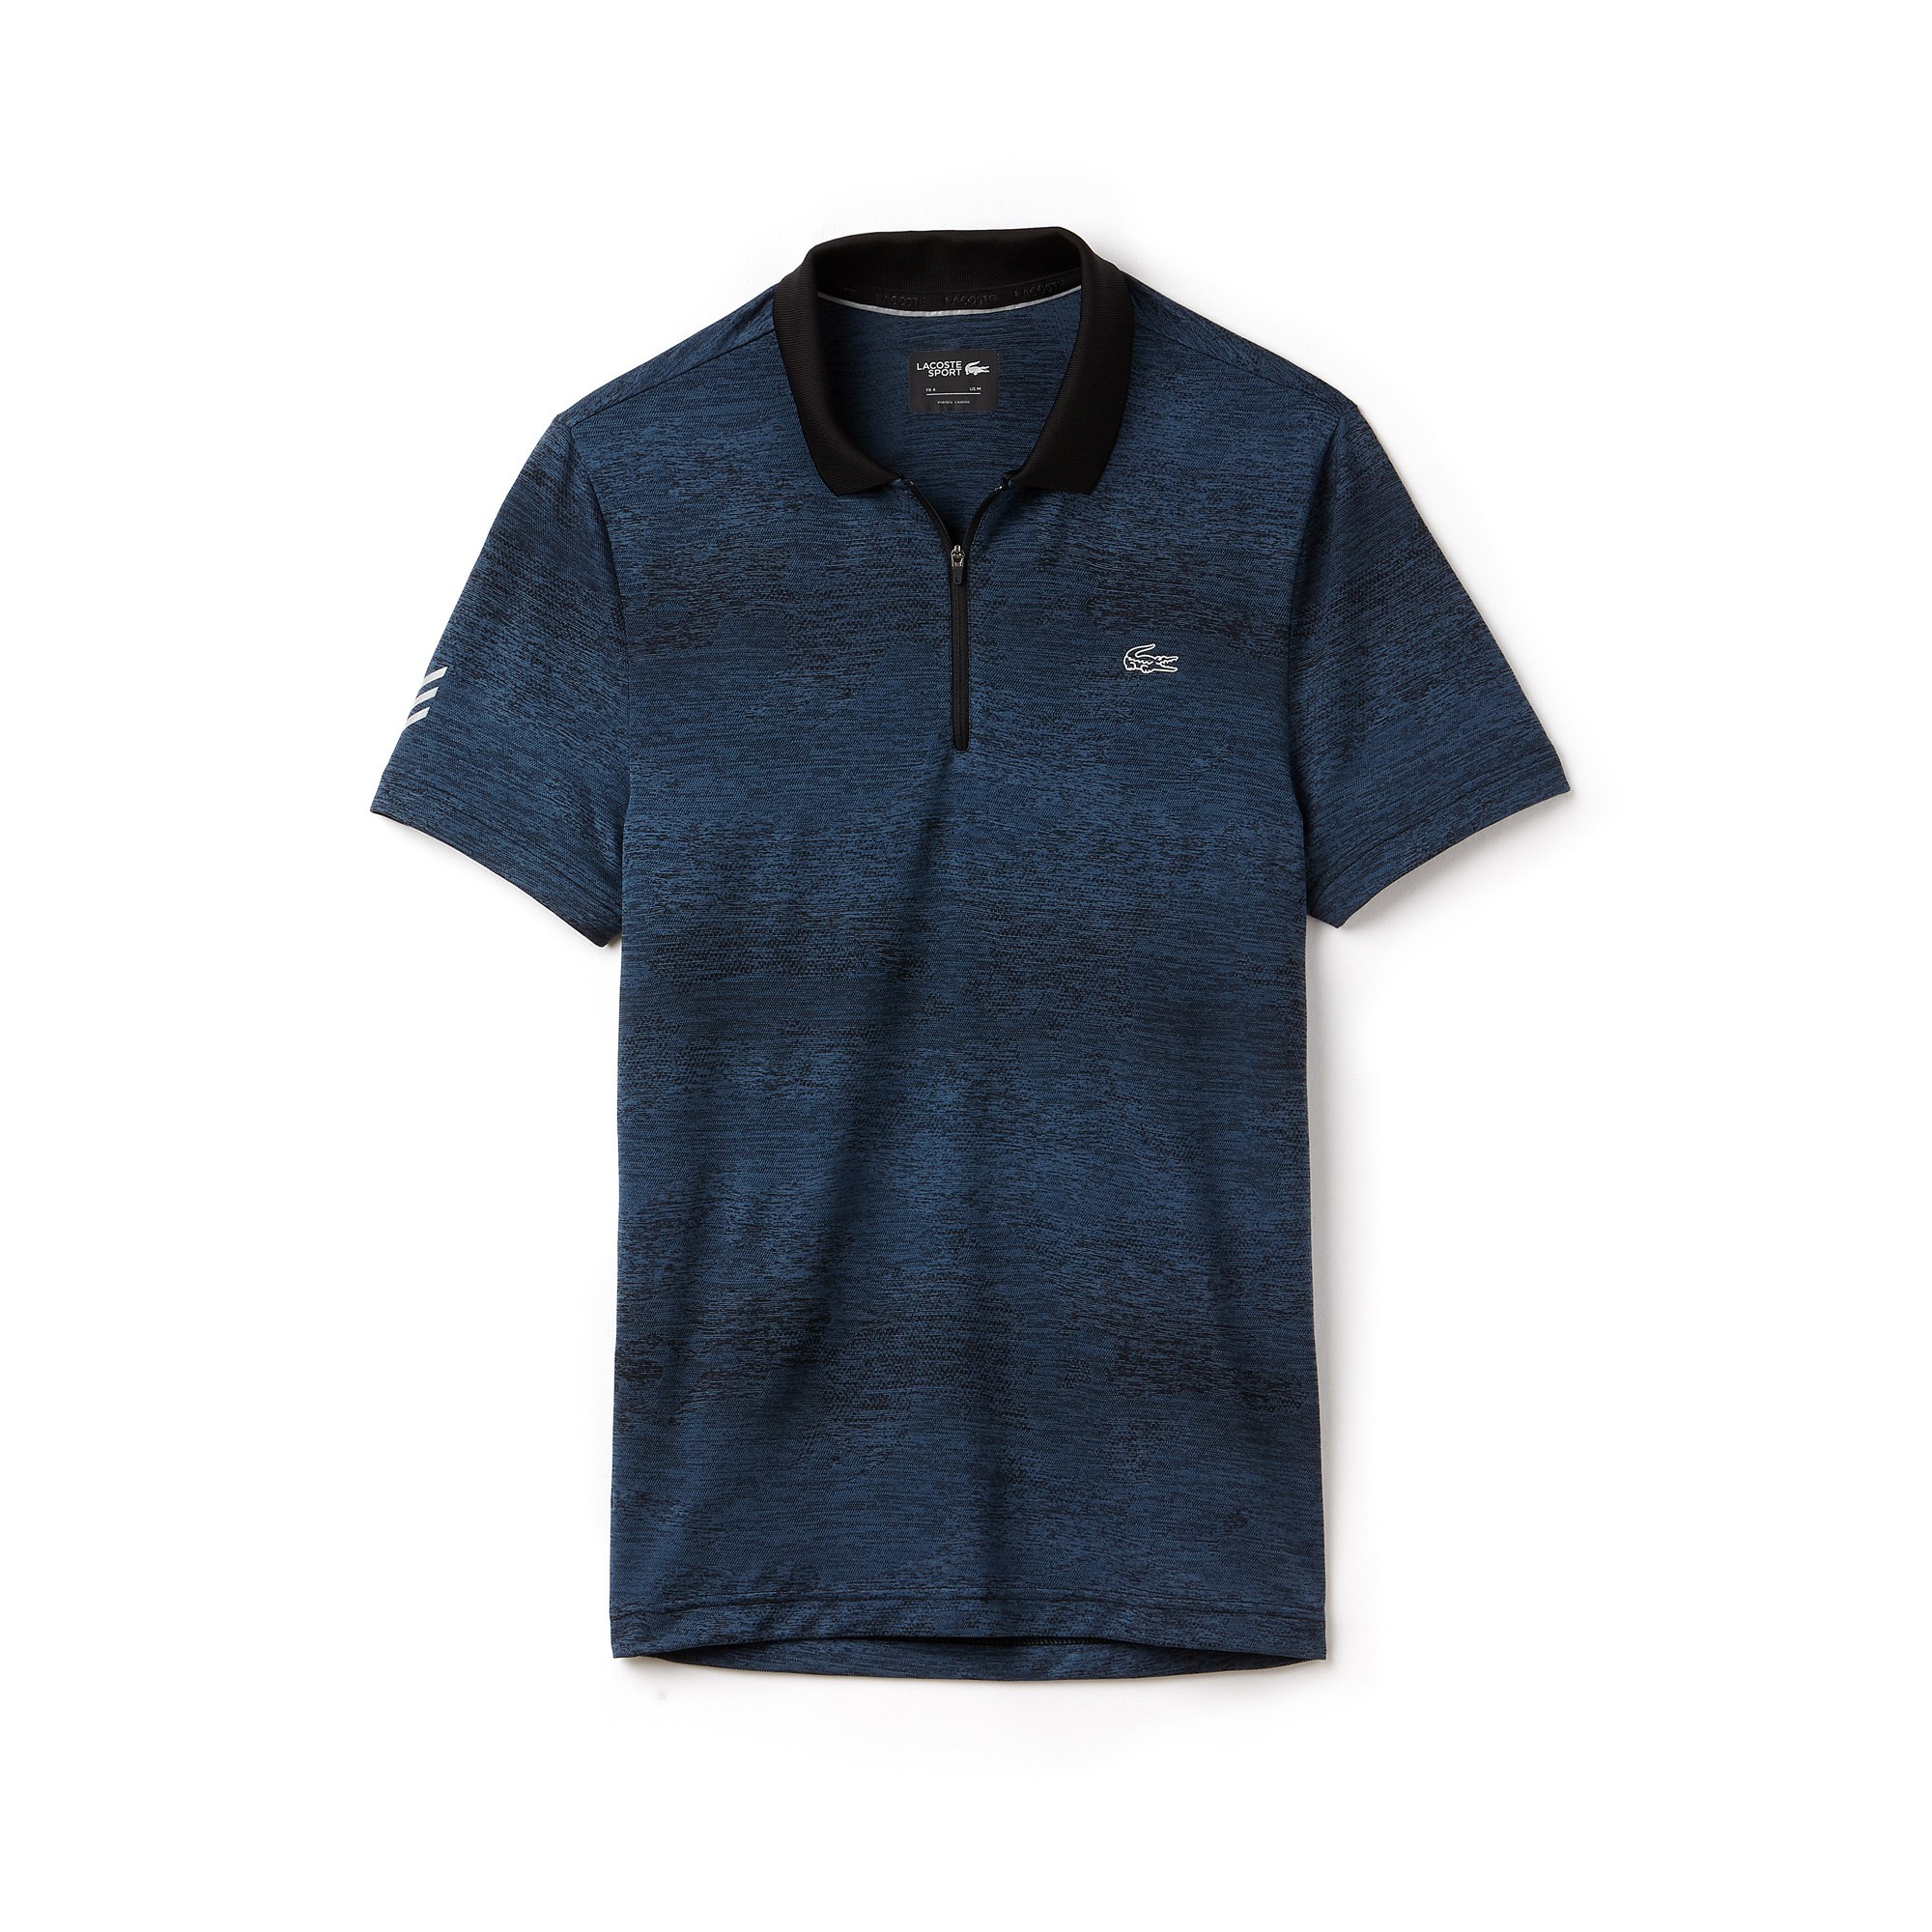 Men's Lacoste SPORT Zip Neck Print Technical Jersey Tennis Polo